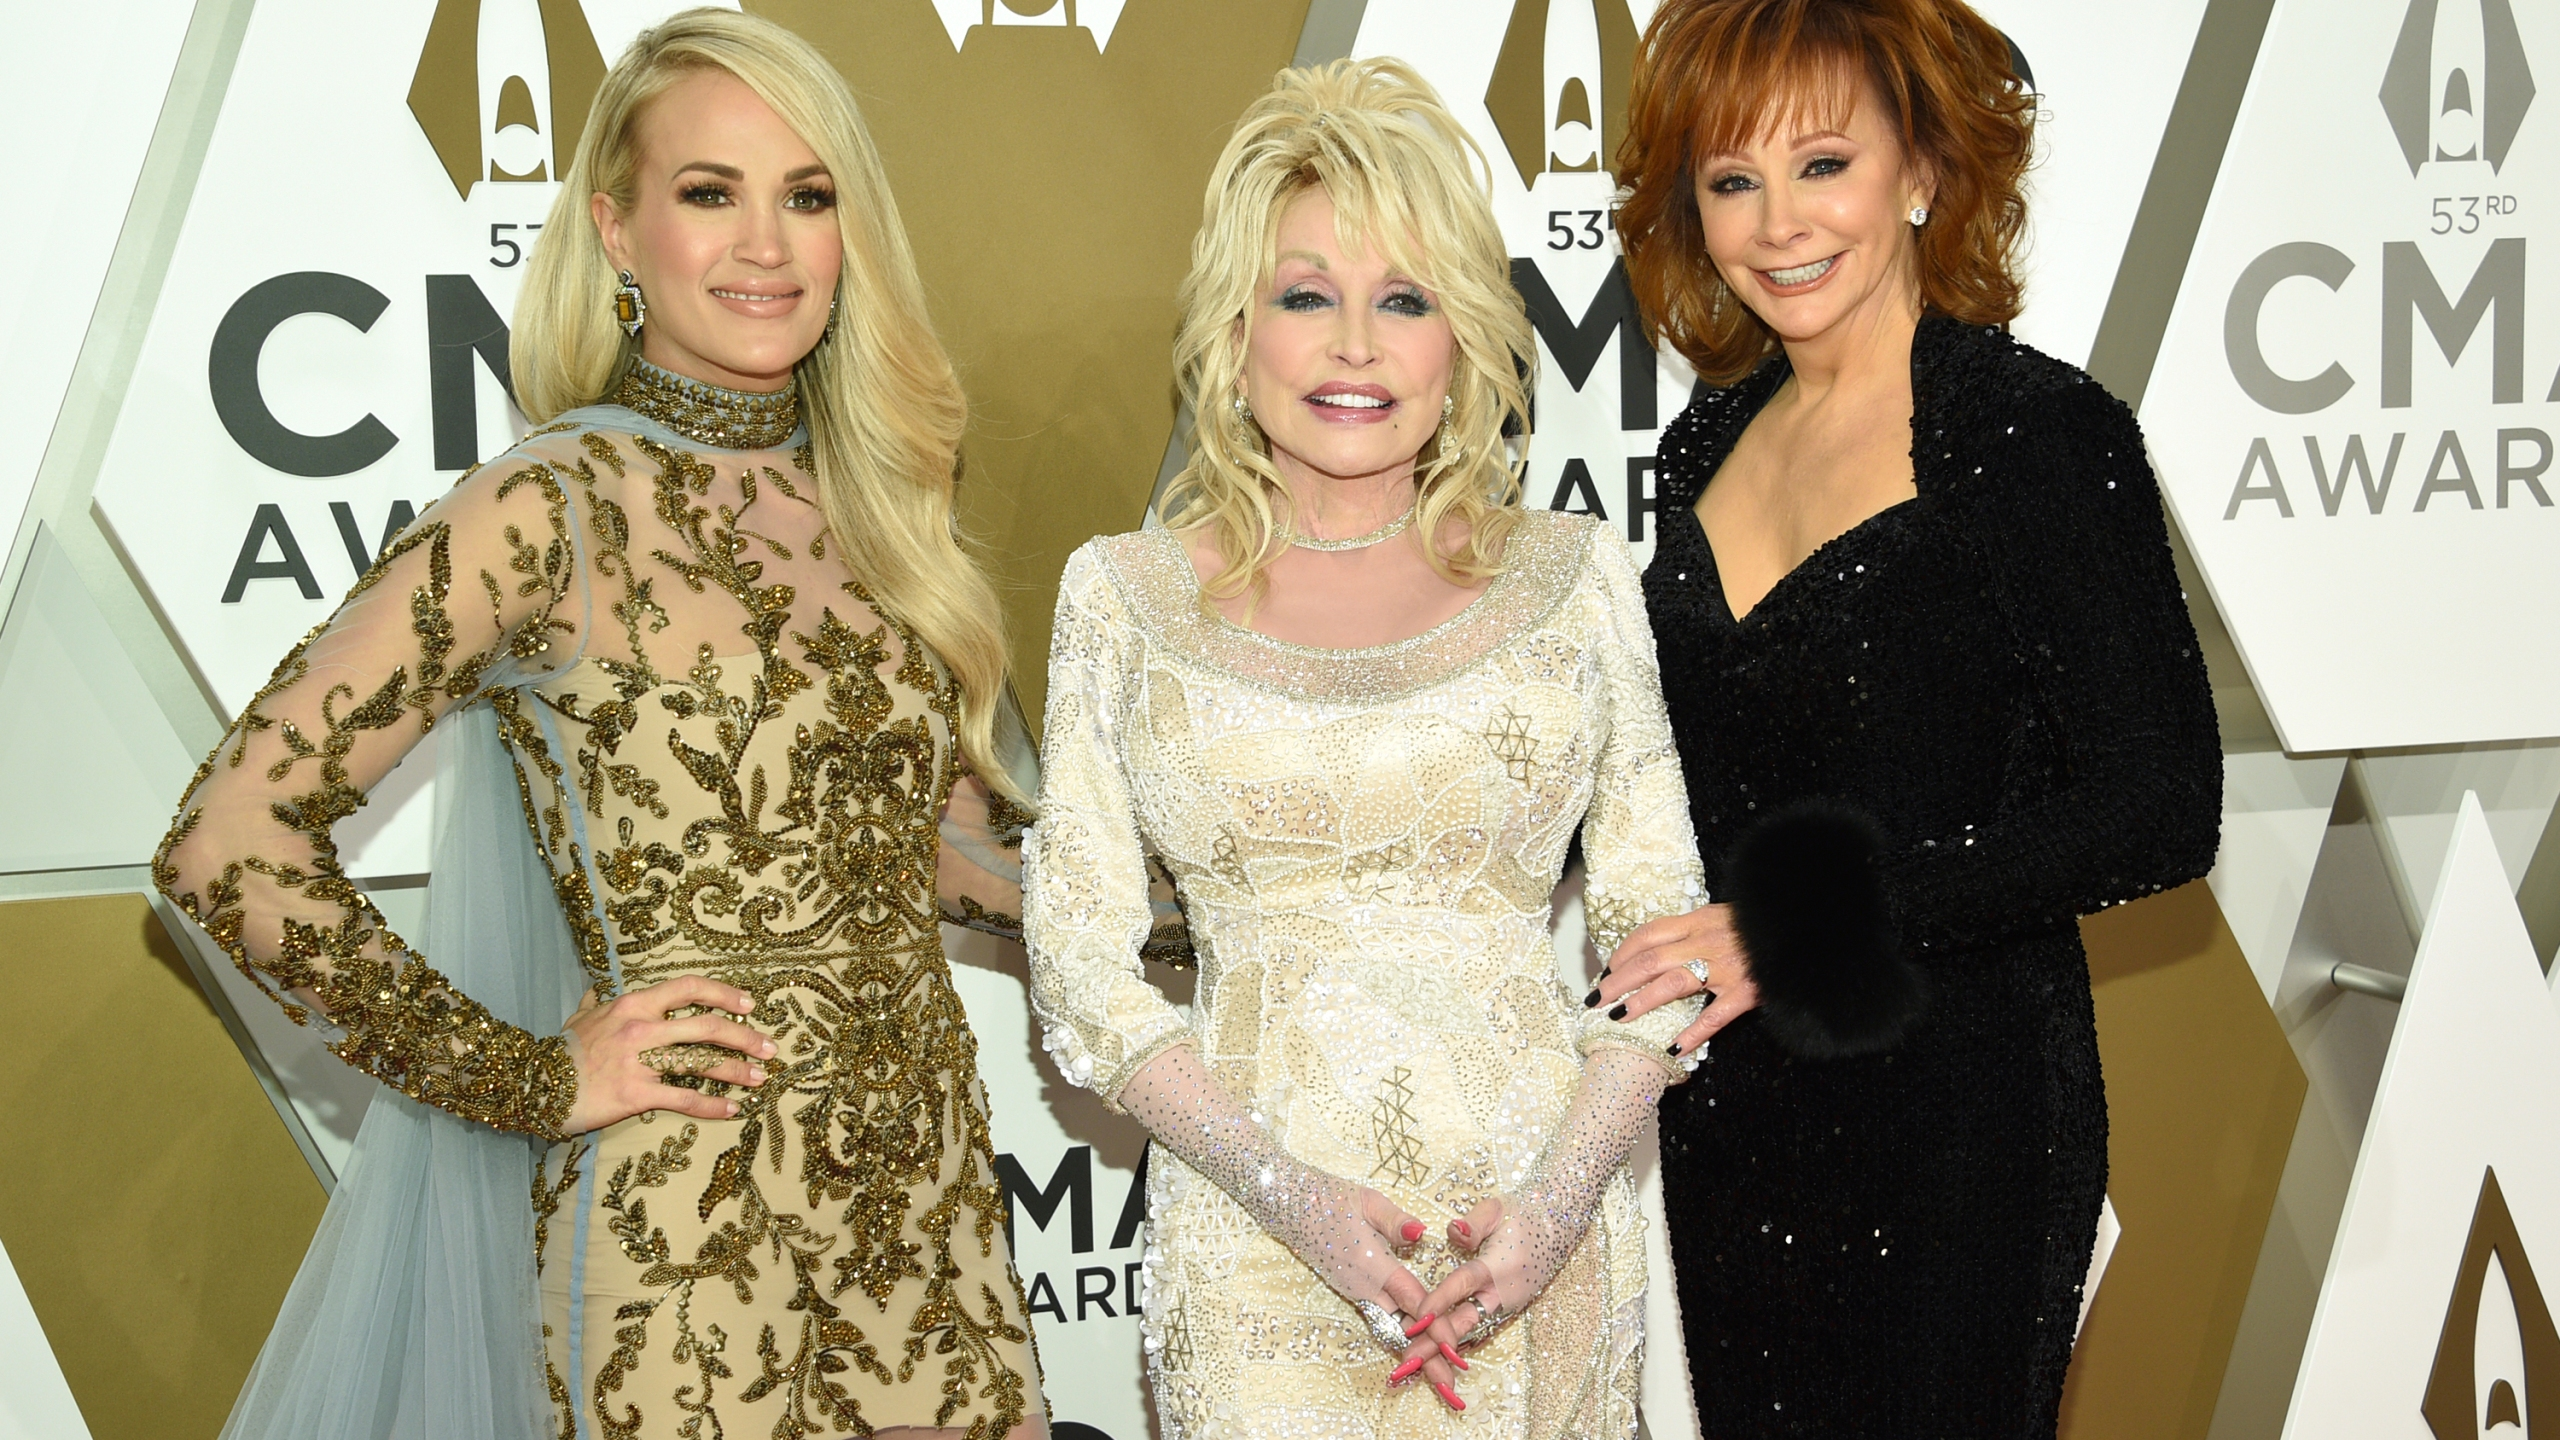 Carrie Underwood, Dolly Parton, Reba McEntire